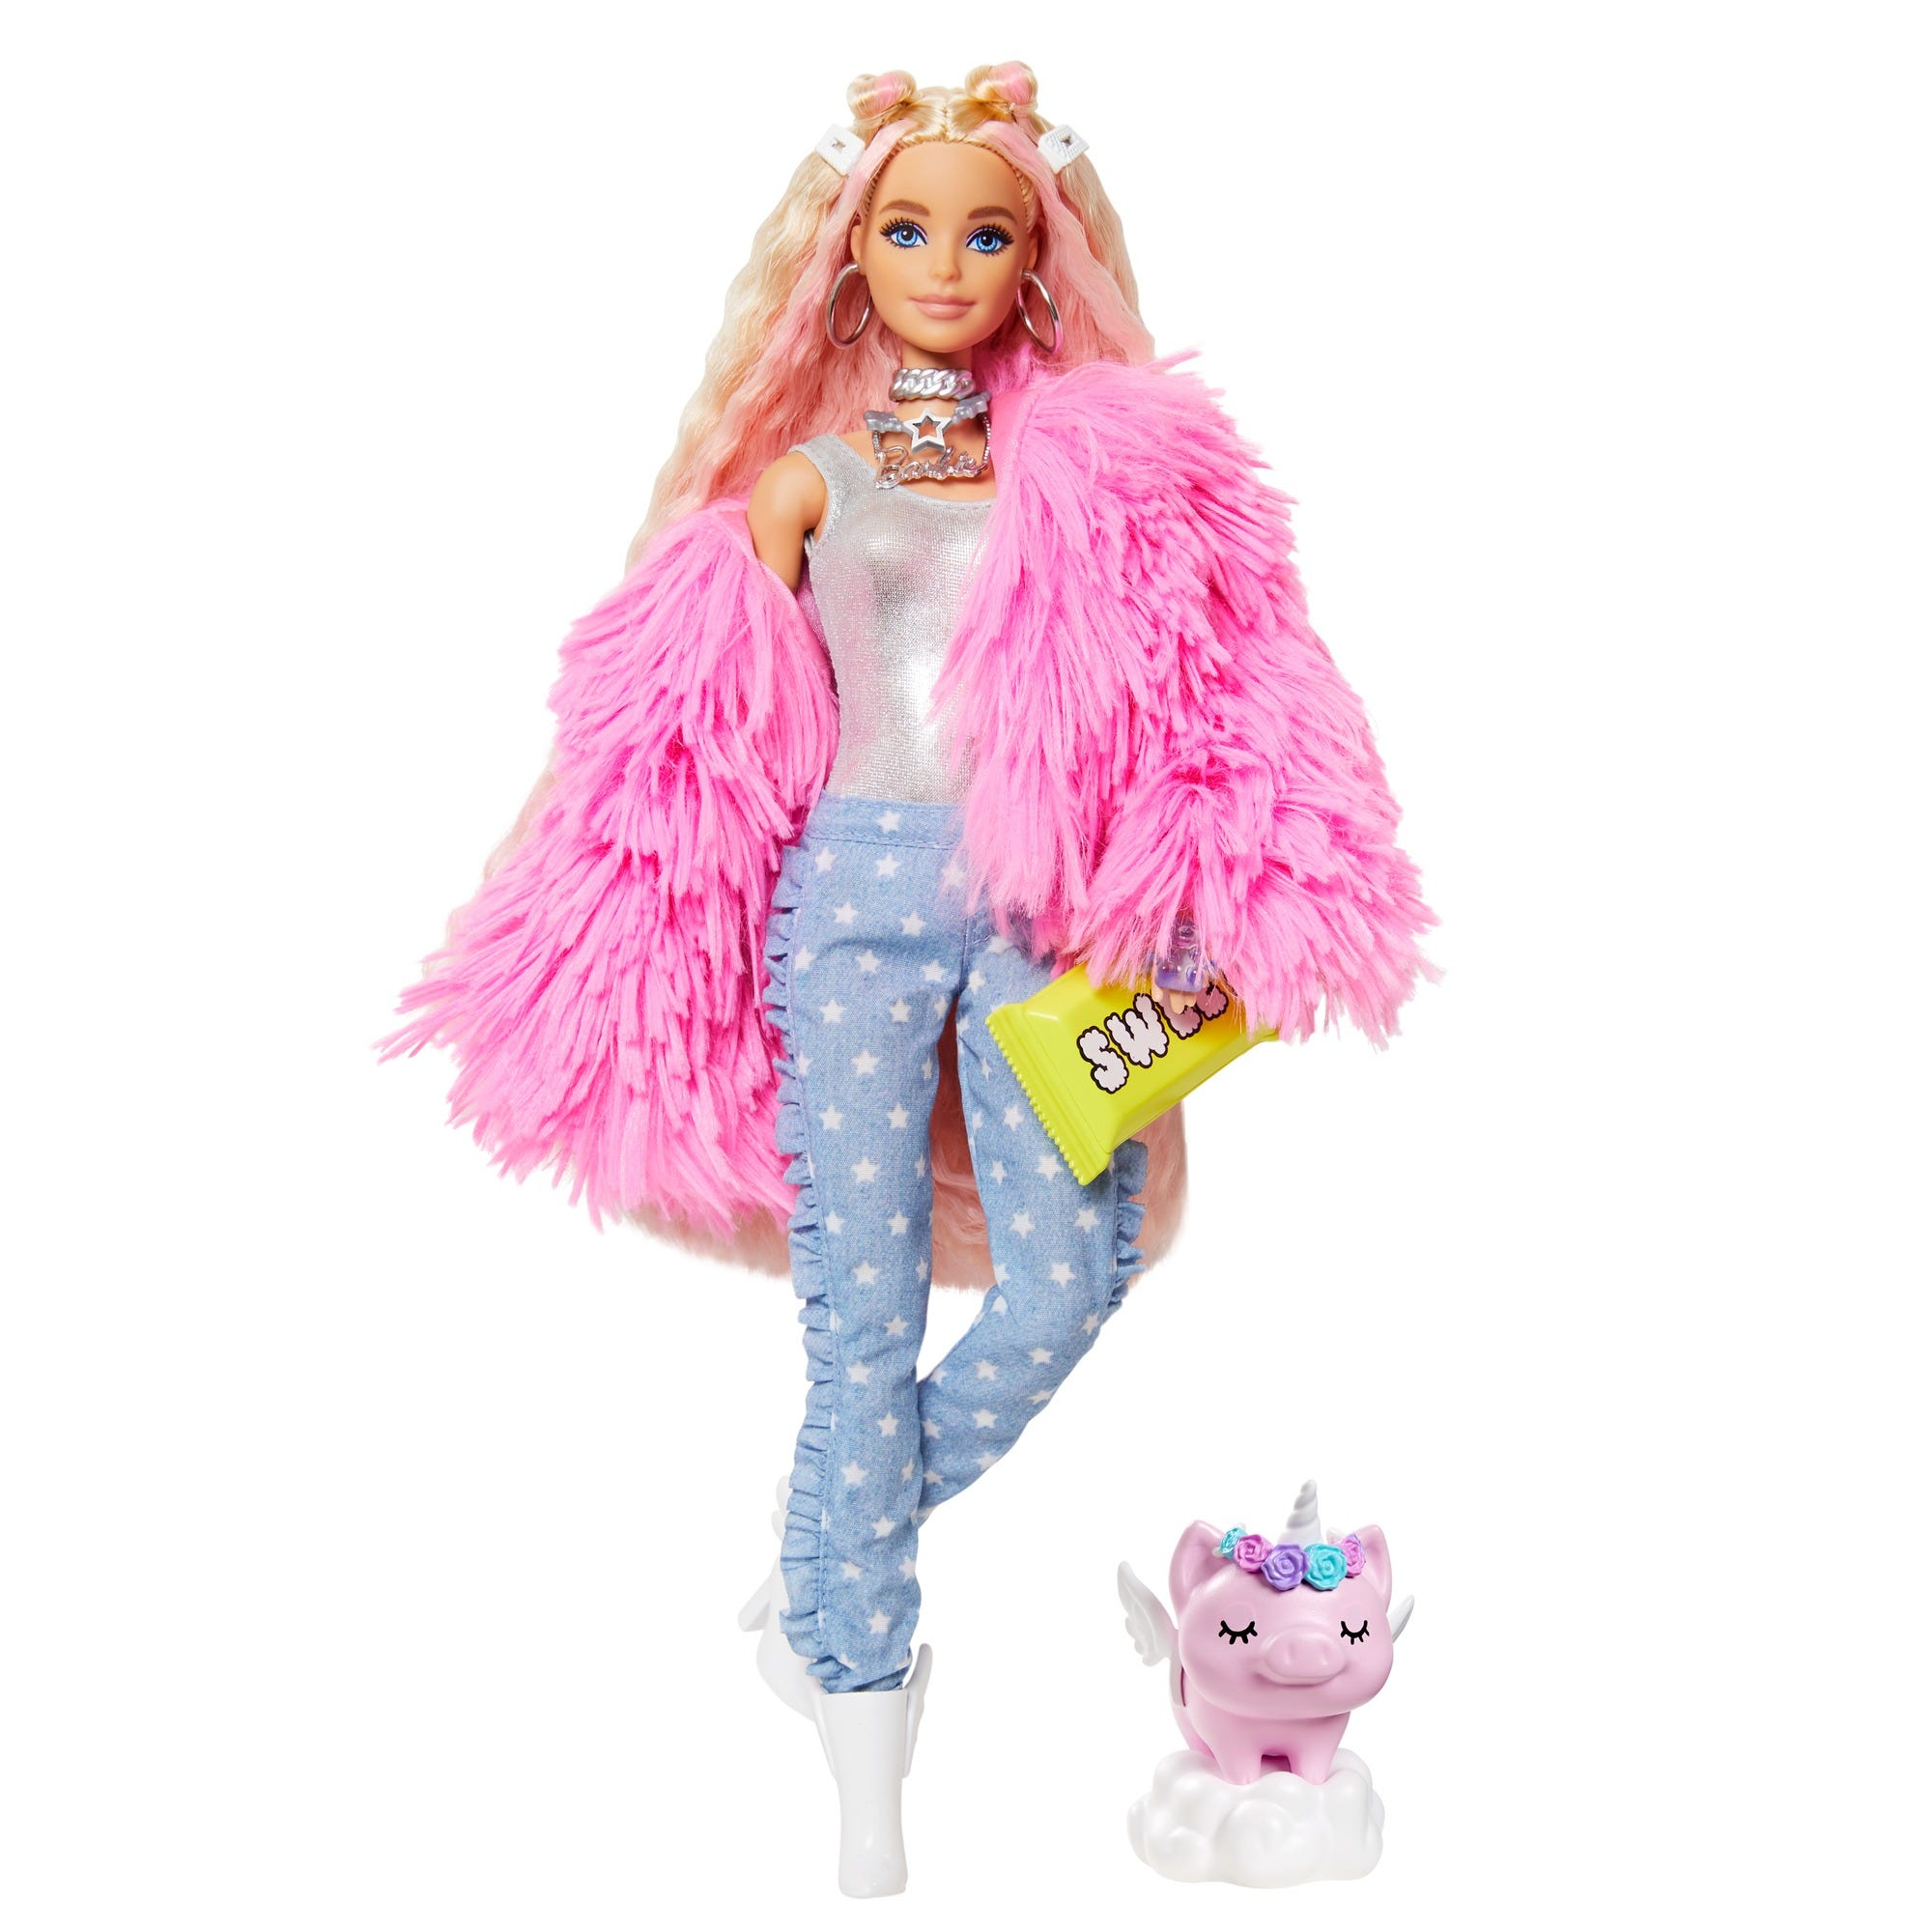 Barbie Extra Doll - Fluffy Pink Jacket